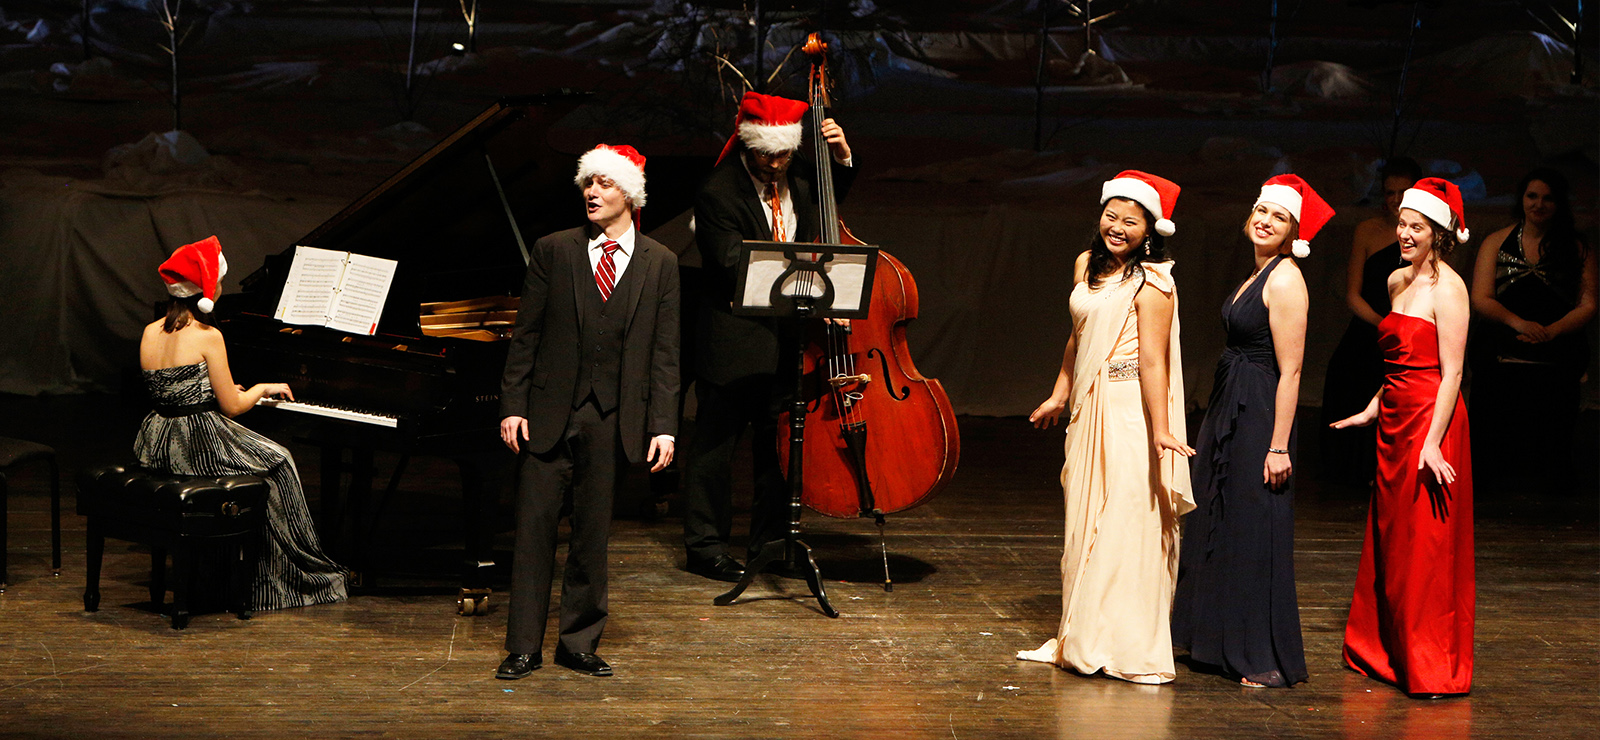 [Winter Songfest] Photo by Cory Weaver